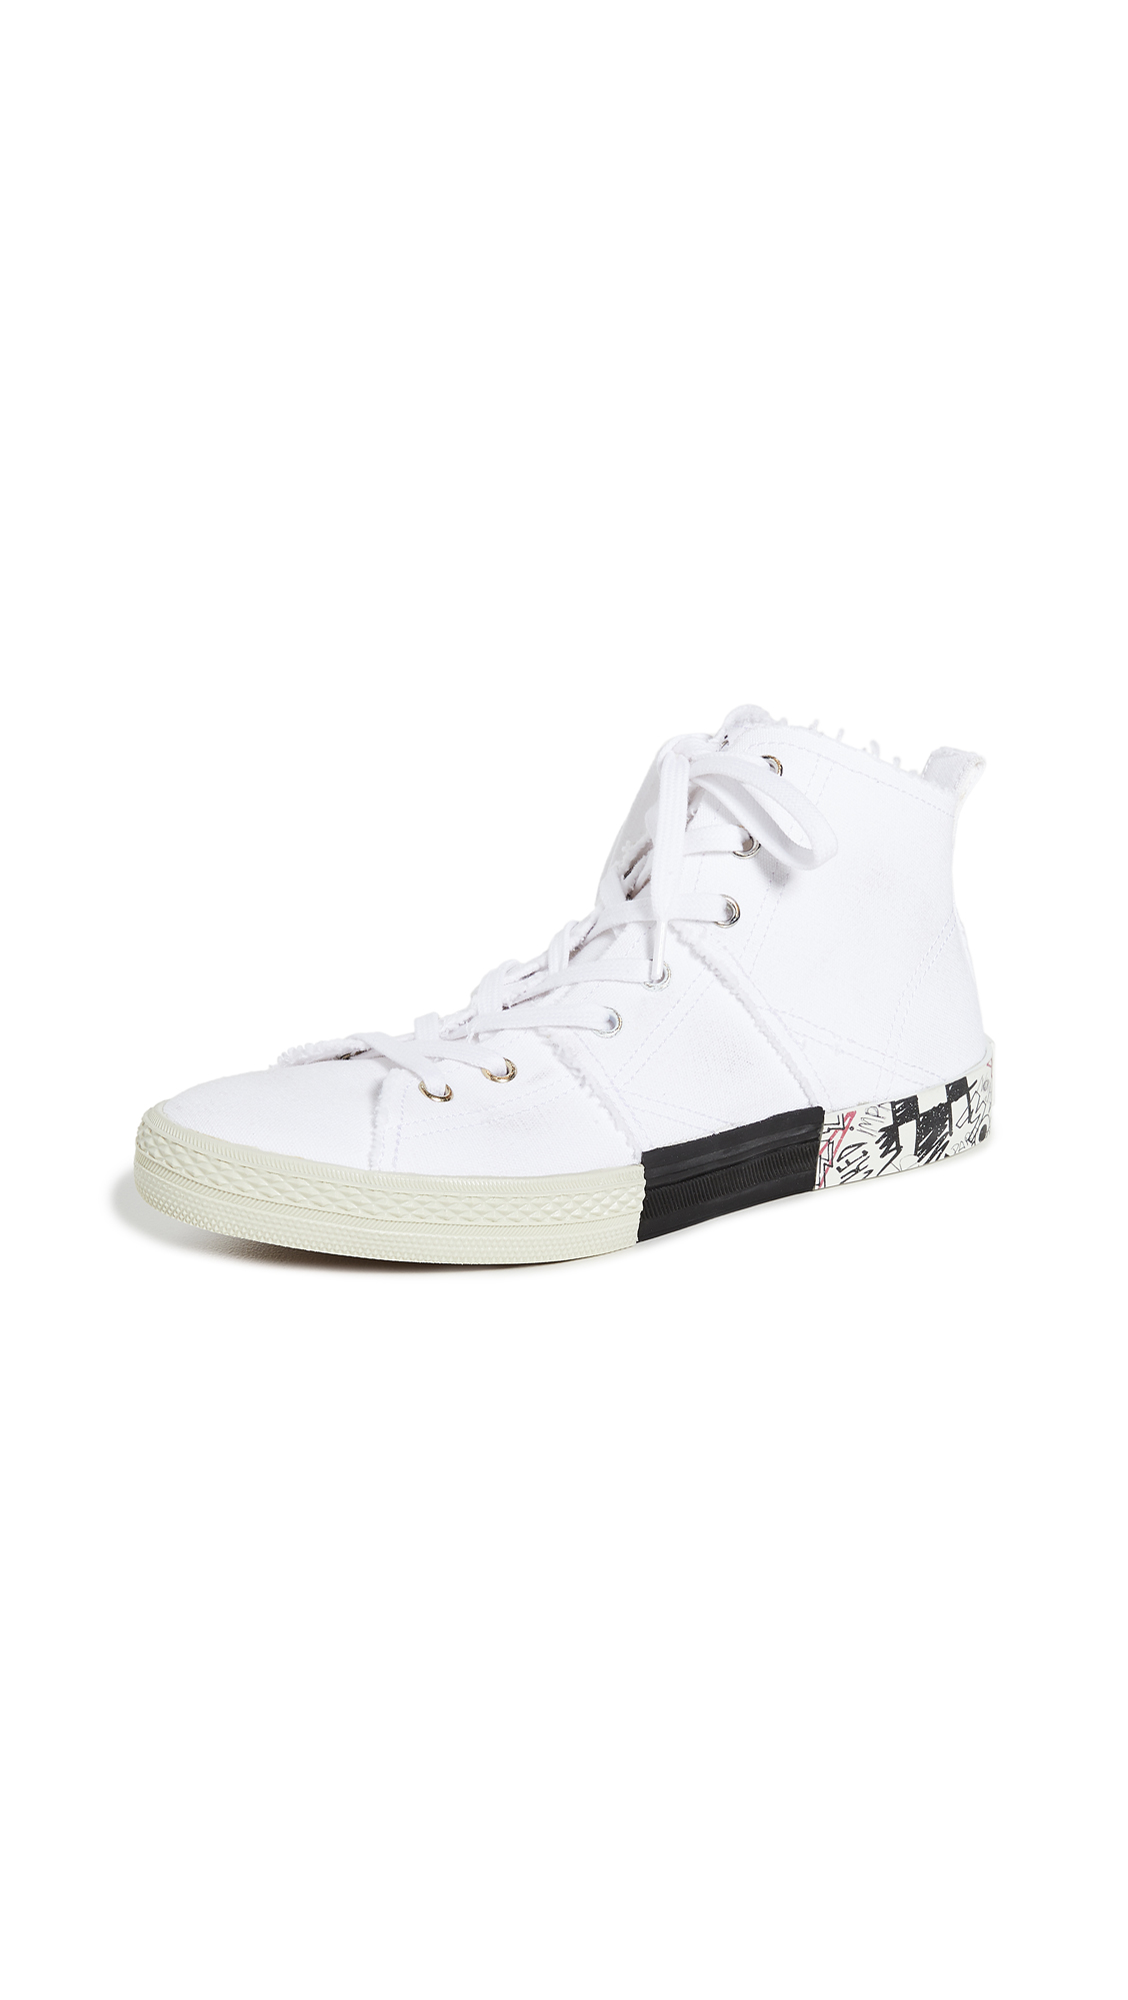 Maison Margiela Layered High Top Sneakers - 60% Off Sale